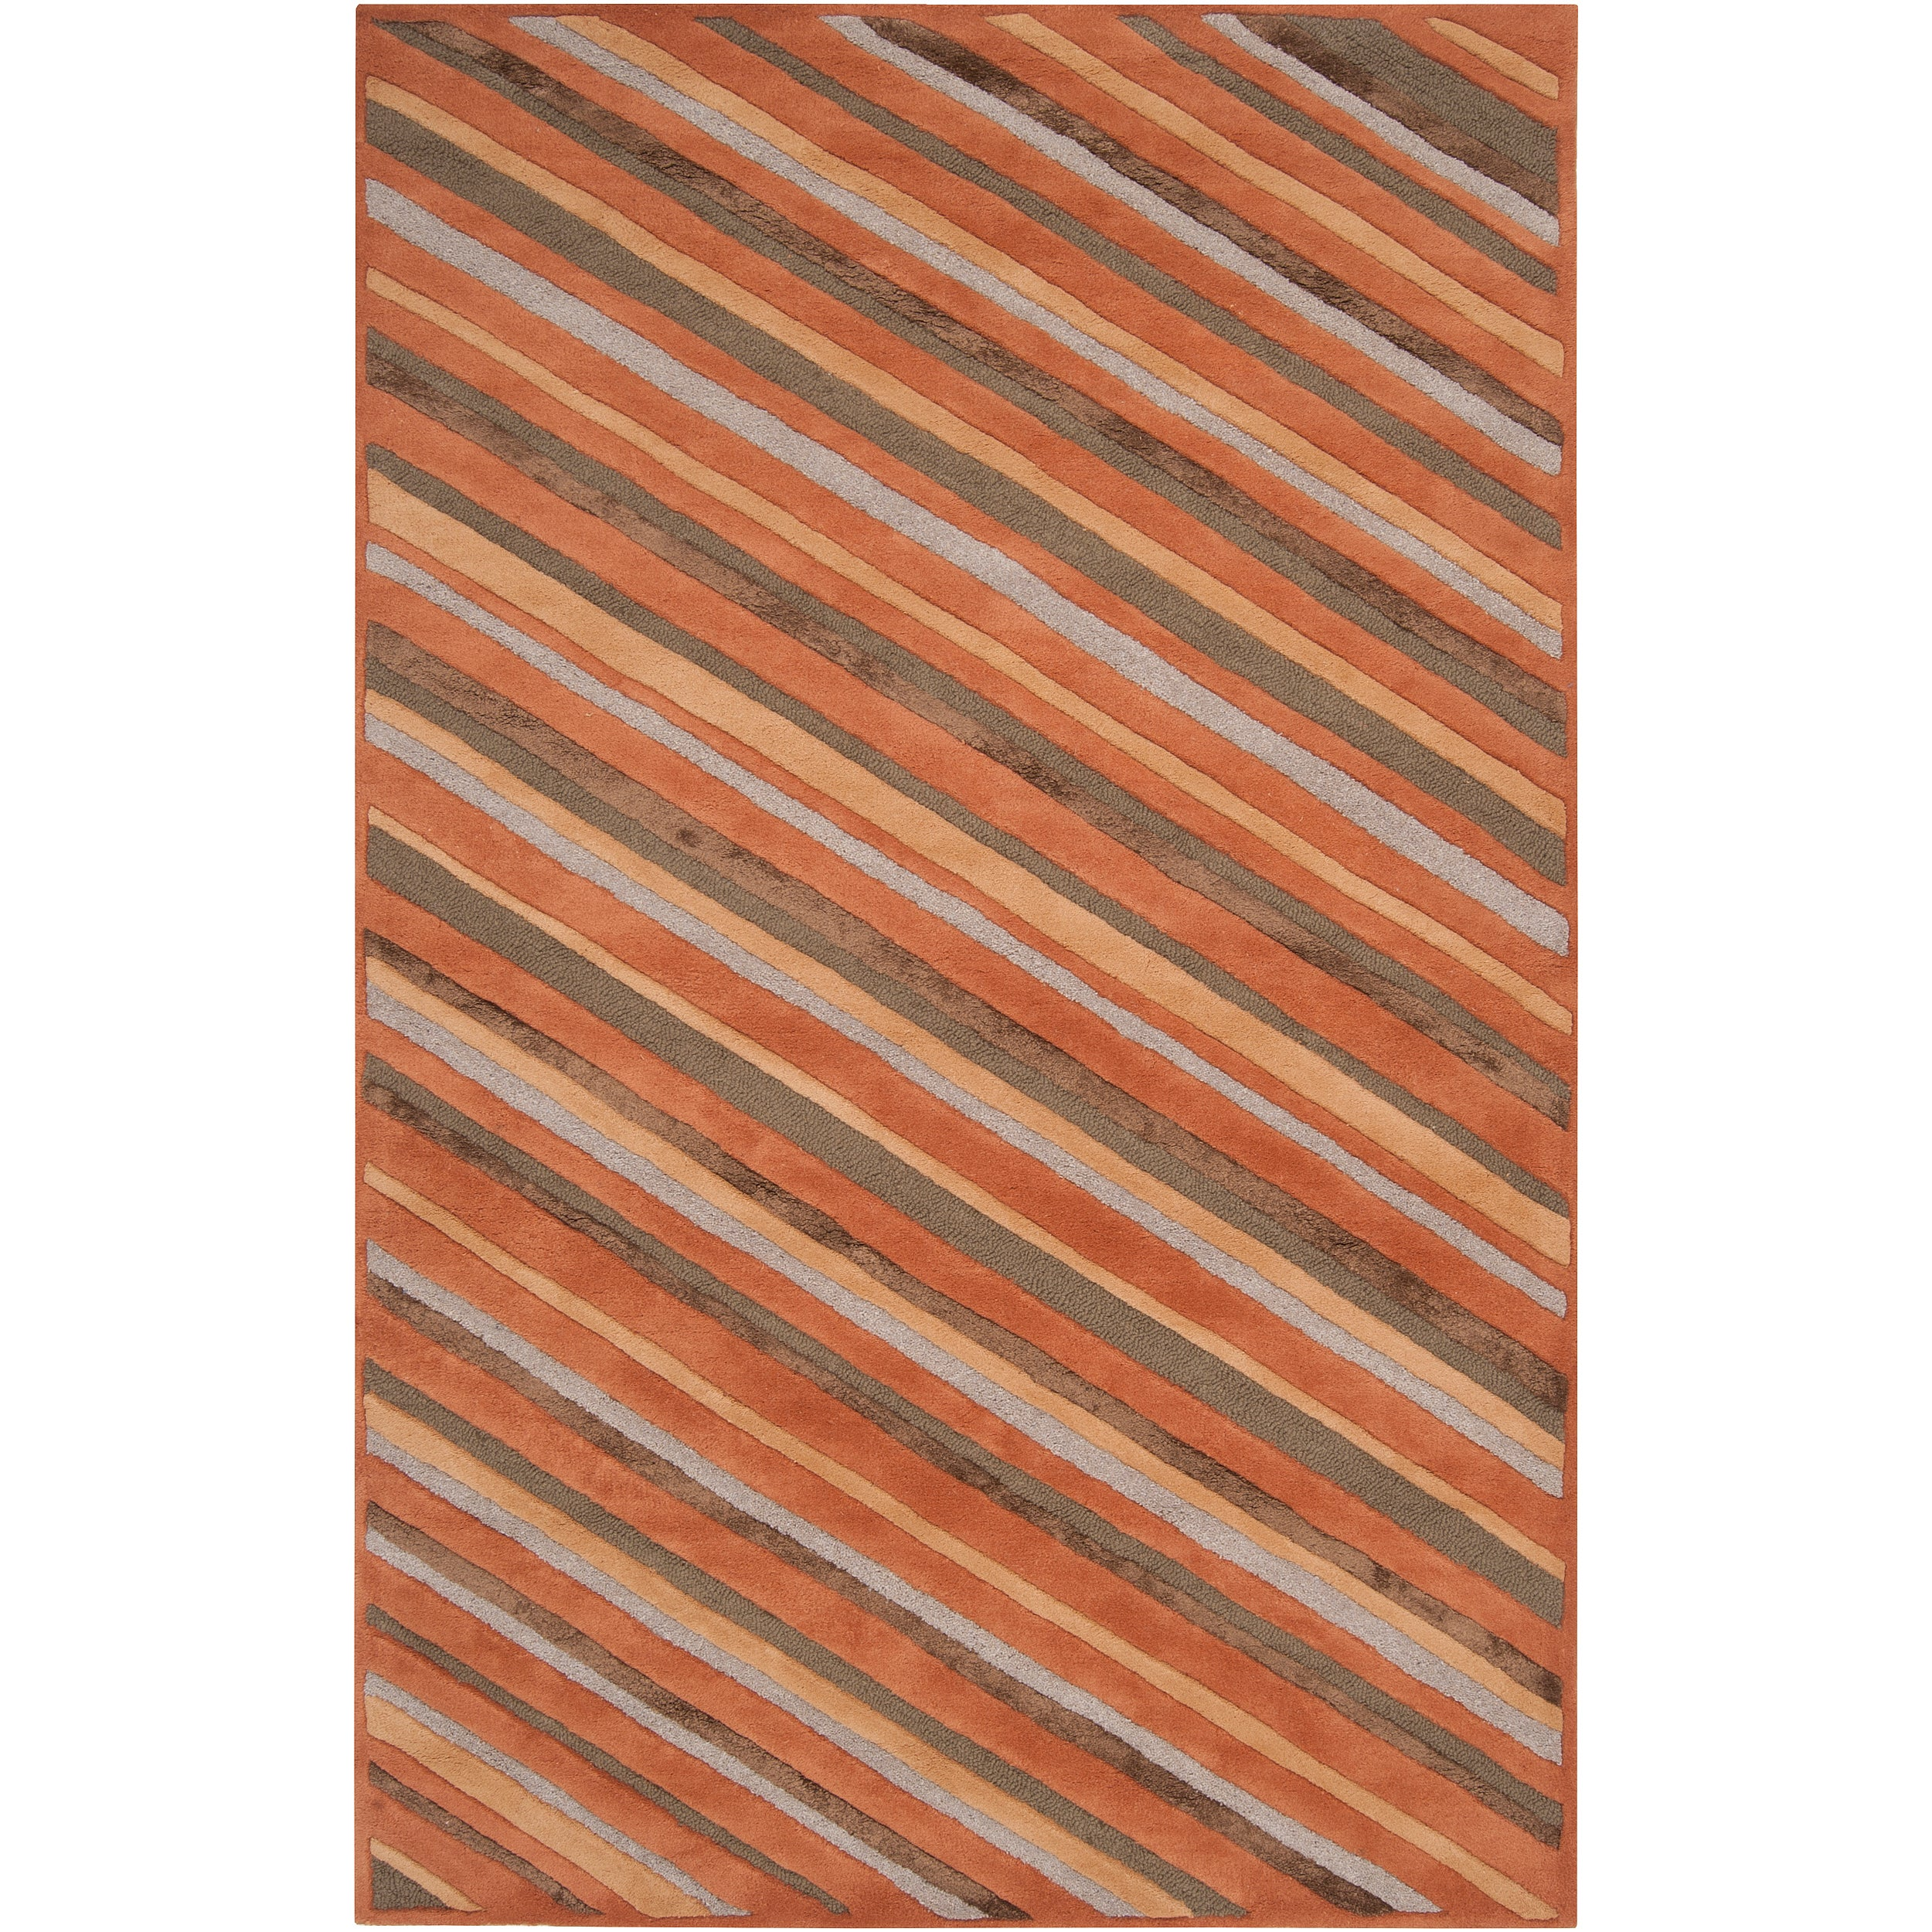 Candice Olson Hand-tufted Brown Cane Diagonal Stripes Wool Rug (3'3 x 5'3)